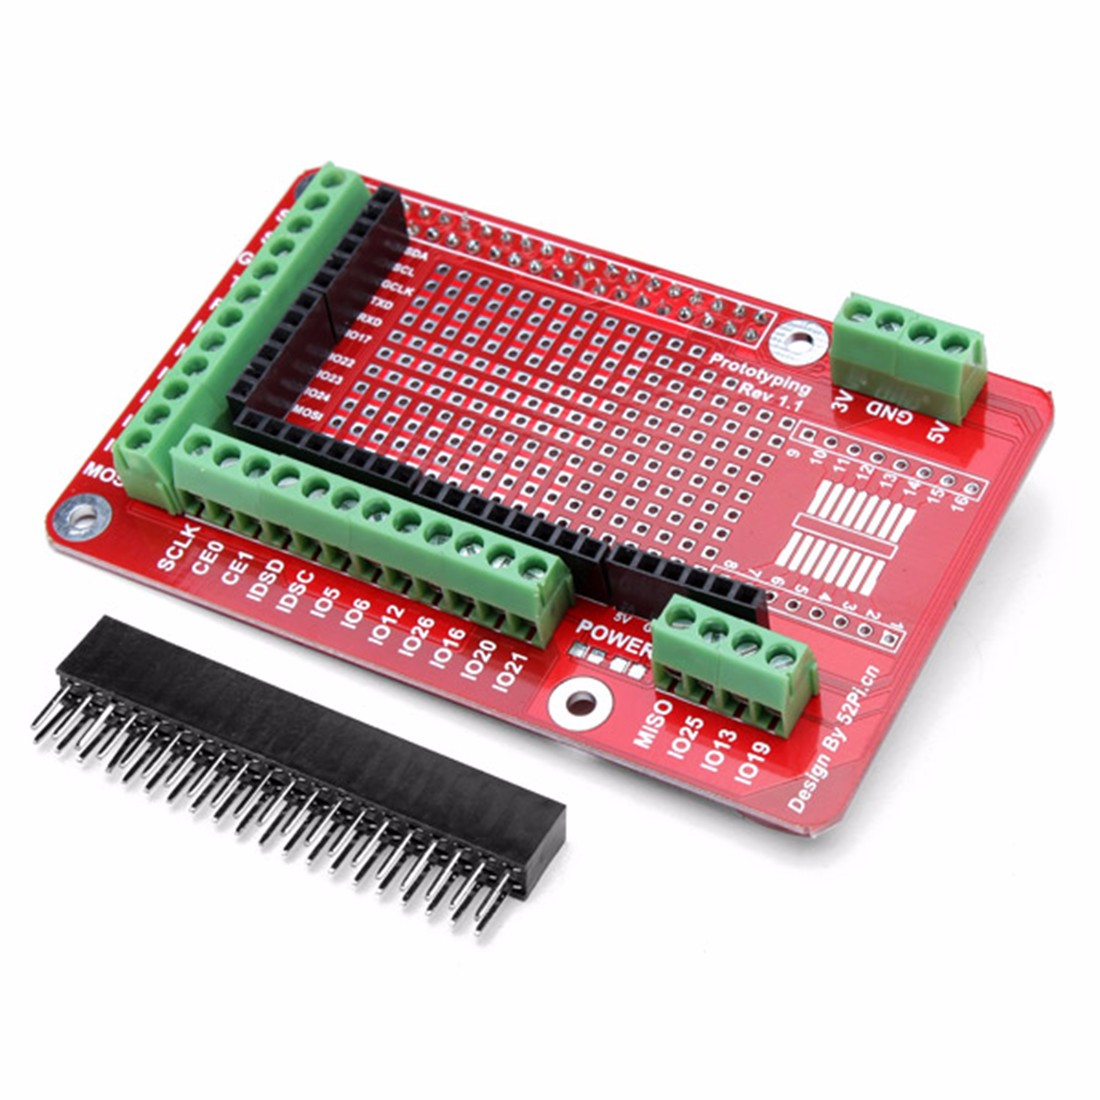 Best Promotion 1Pcs Prototyping Expansion Shield Board Prototyping Shield Module For Raspberry Pi 2 Model B & RPI B+